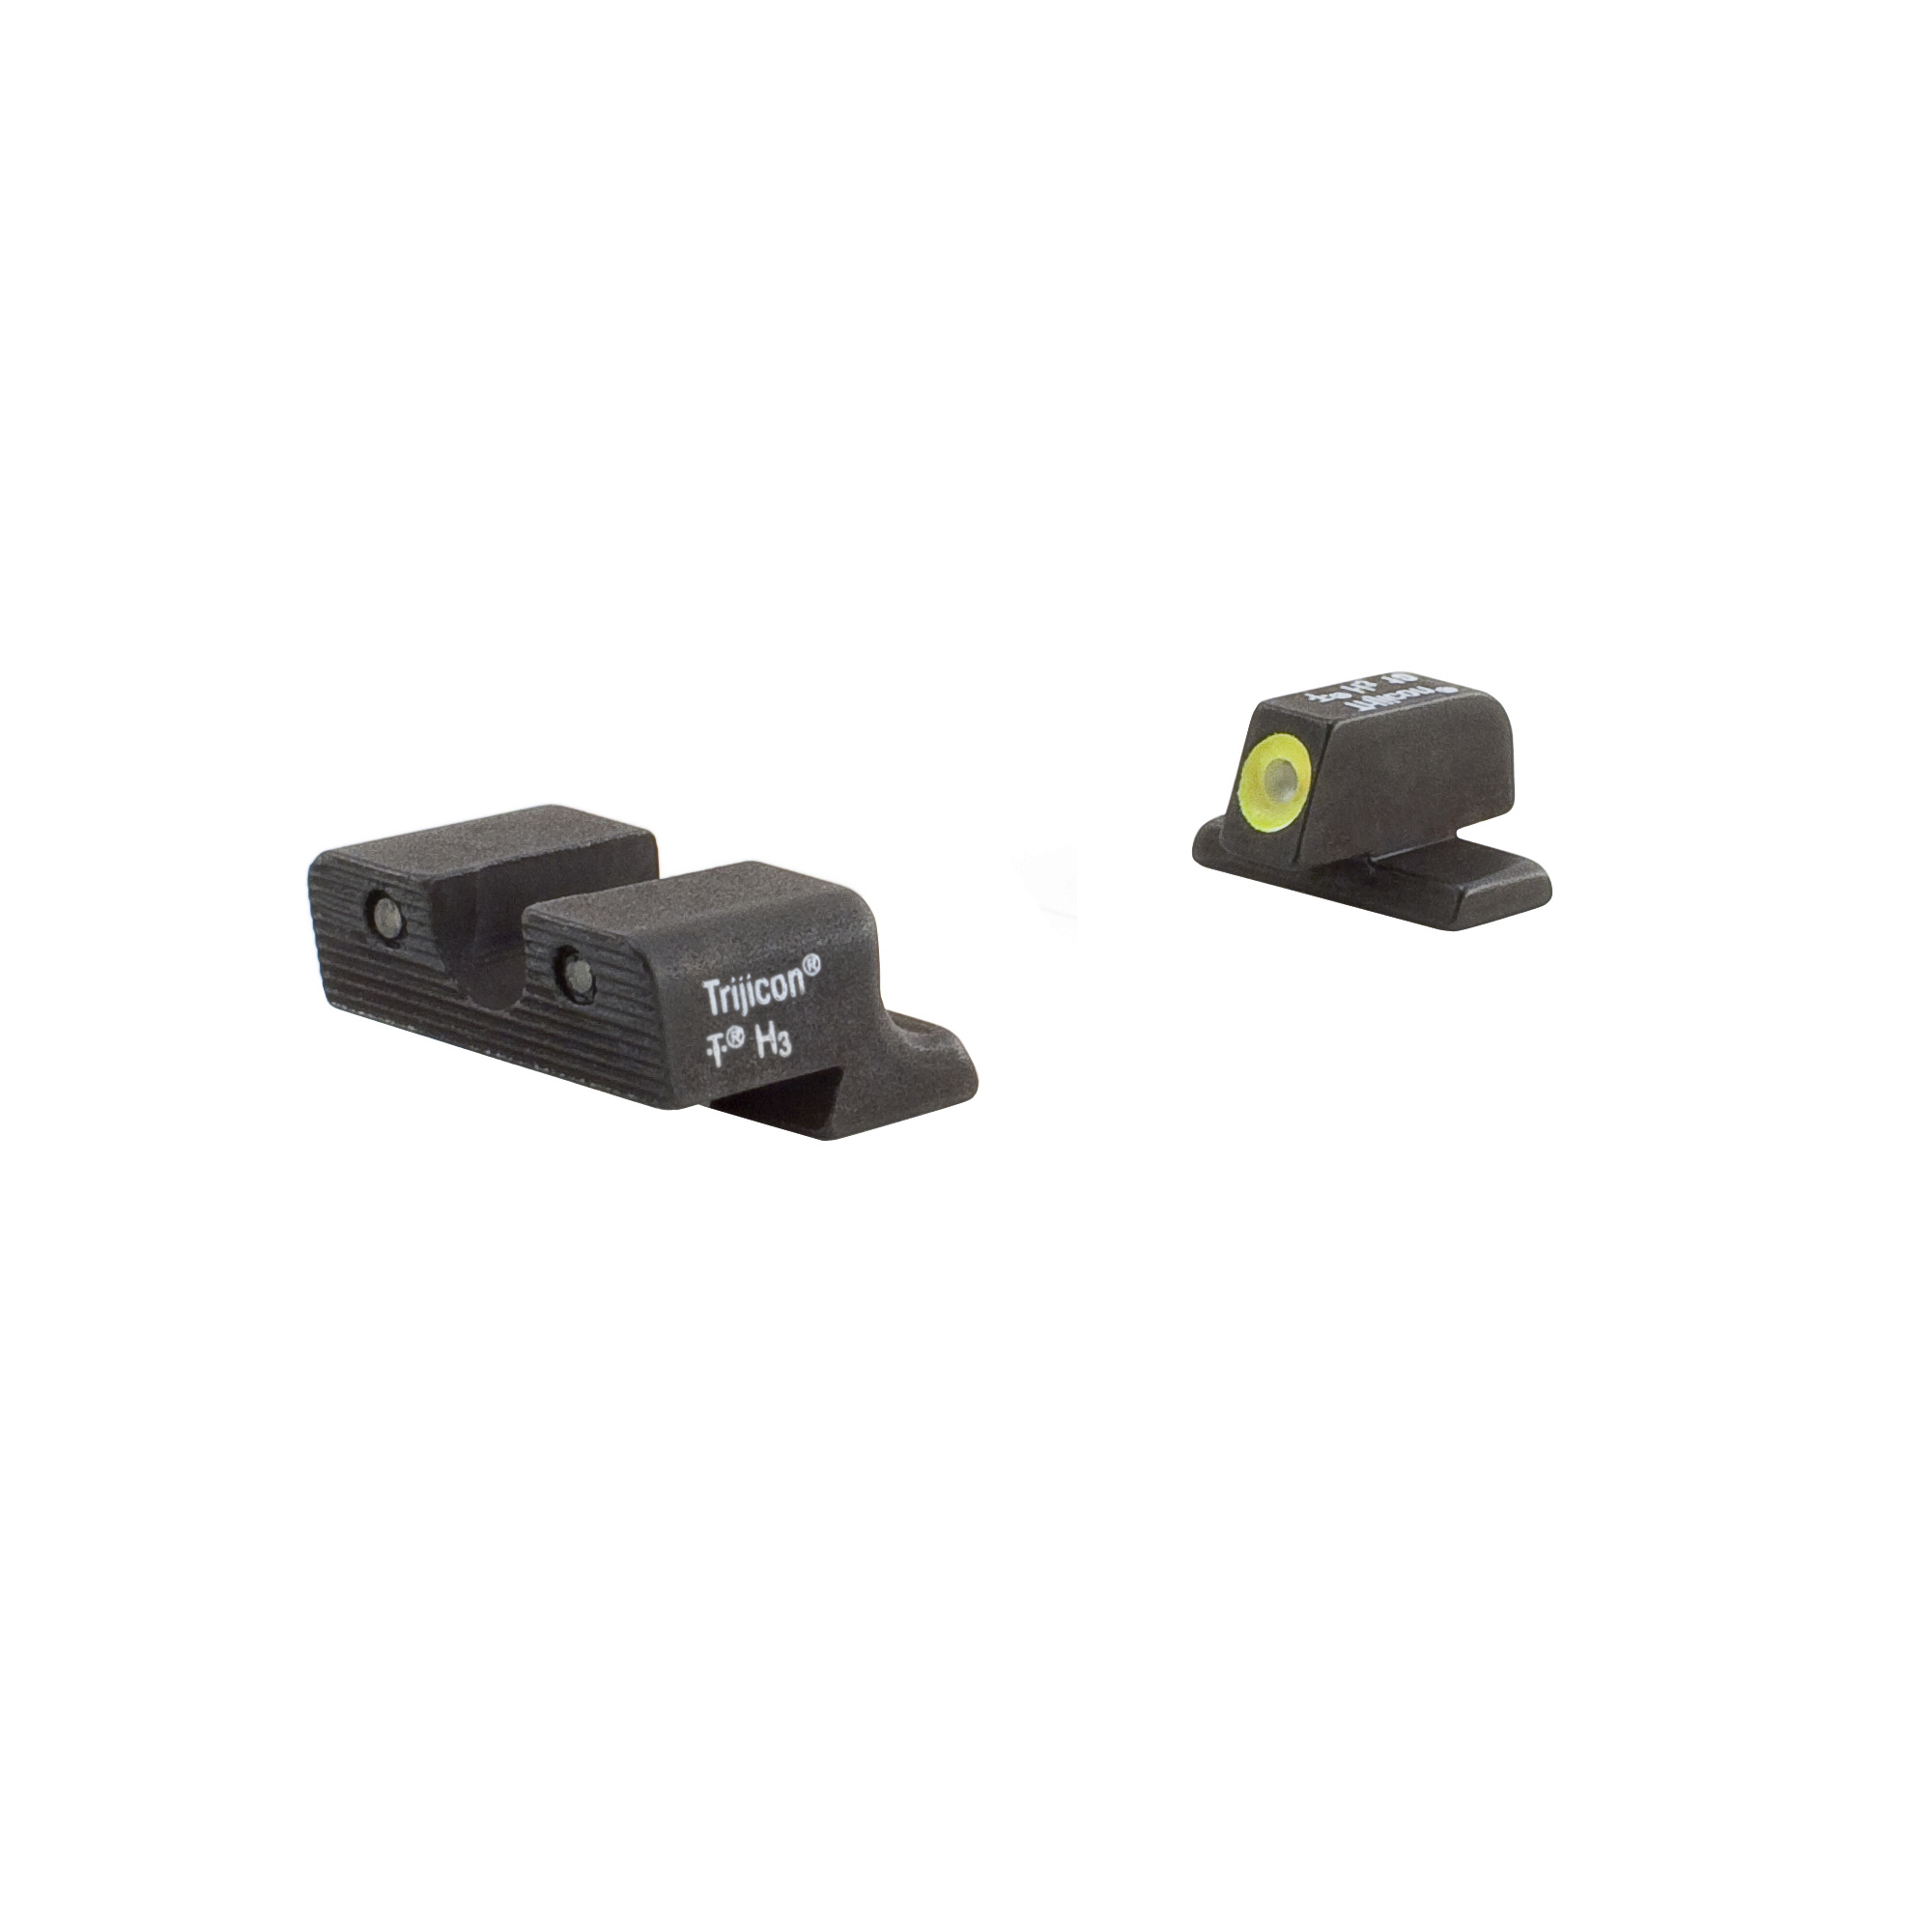 Trijicon Springfield HD Night Sight Set XD Series, Yellow Front Outline Lamp by Trijicon